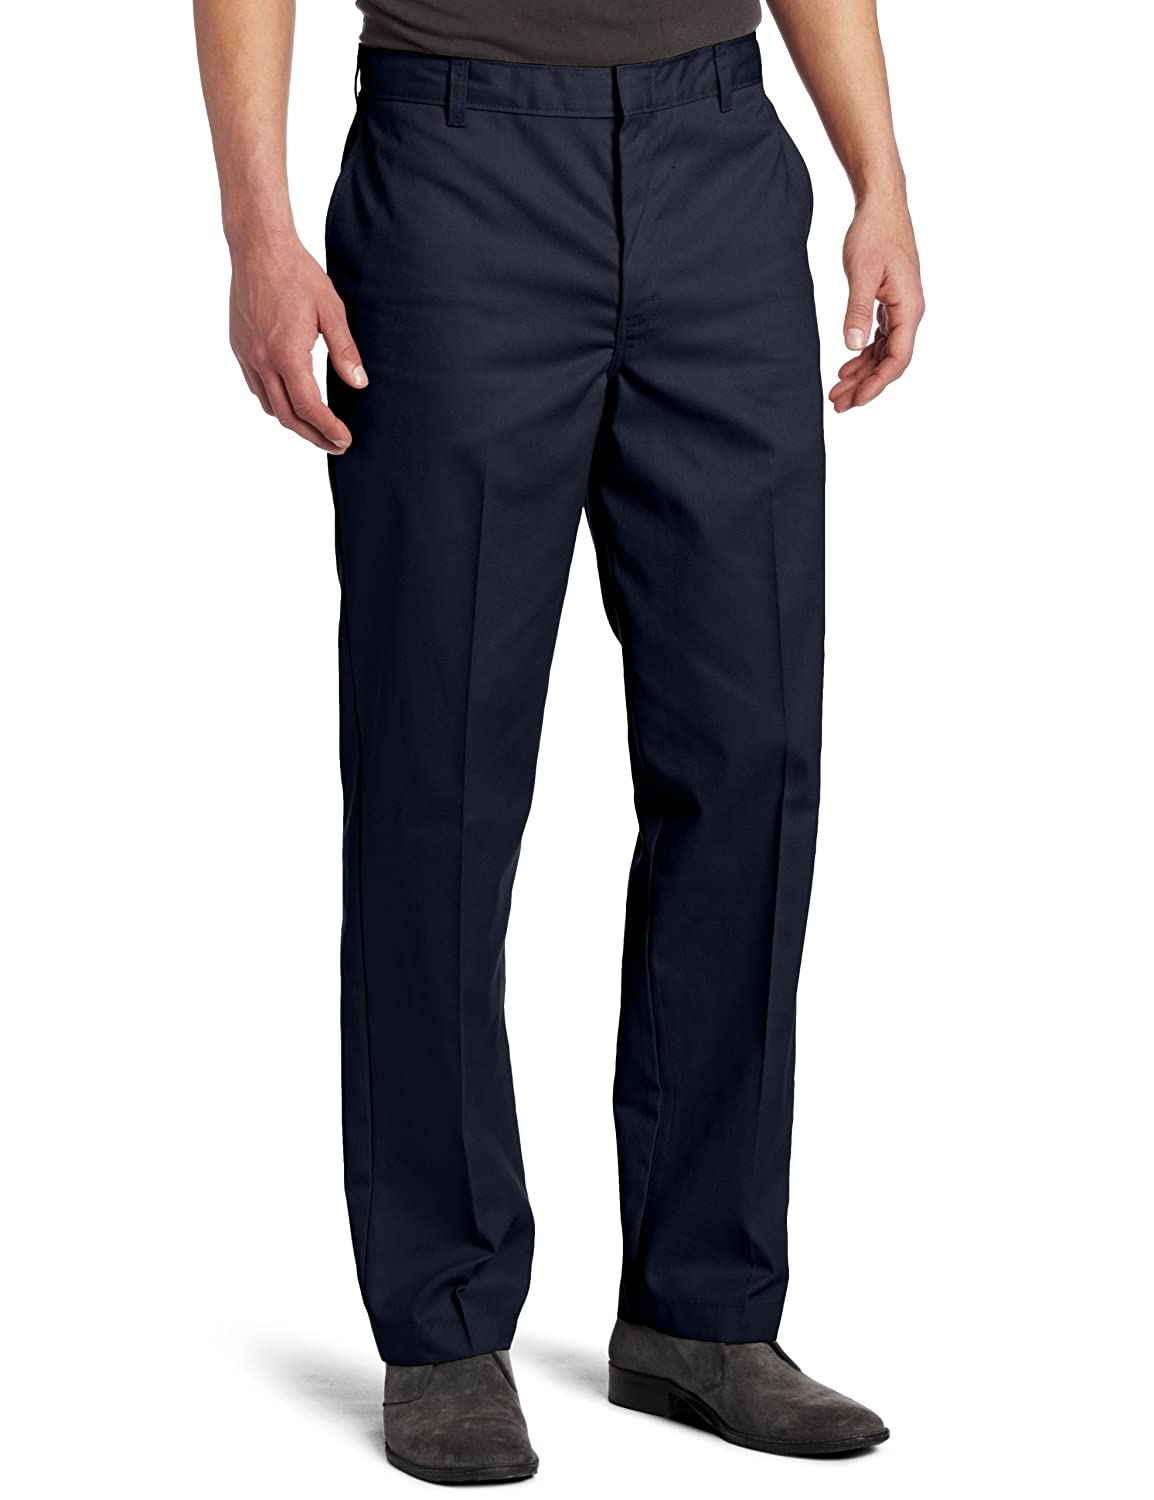 Mens black dress pants 30x34 - Color dress store